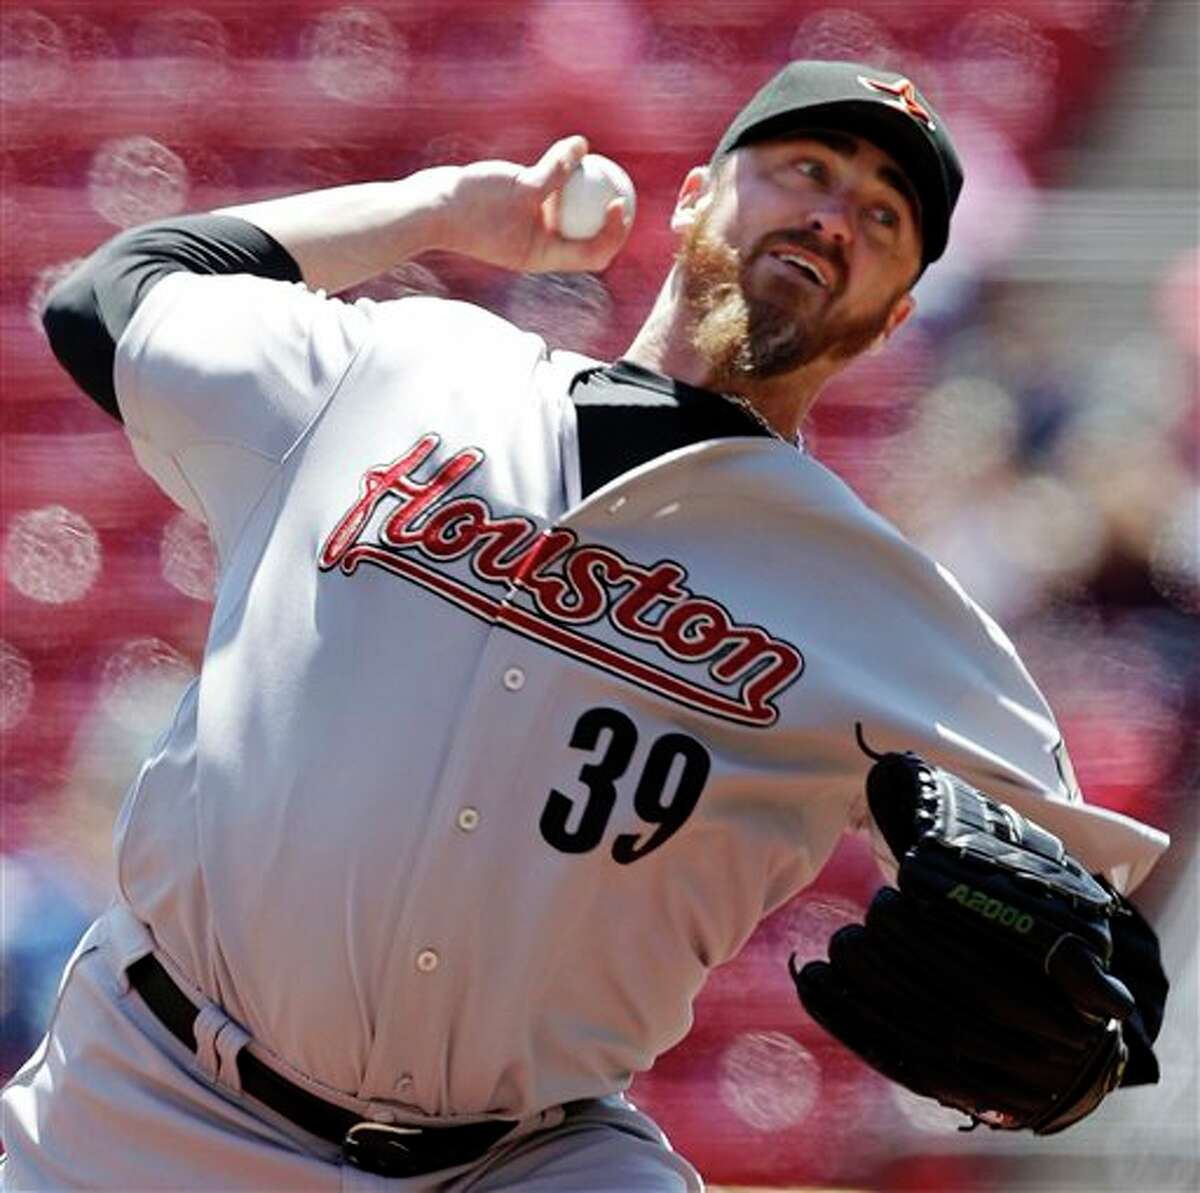 Astros starting pitcher Brett Myers throws against the Reds in the first inning on Thursday in Cincinnati. AL BEHRMAN/ASSOCIATED PRESS